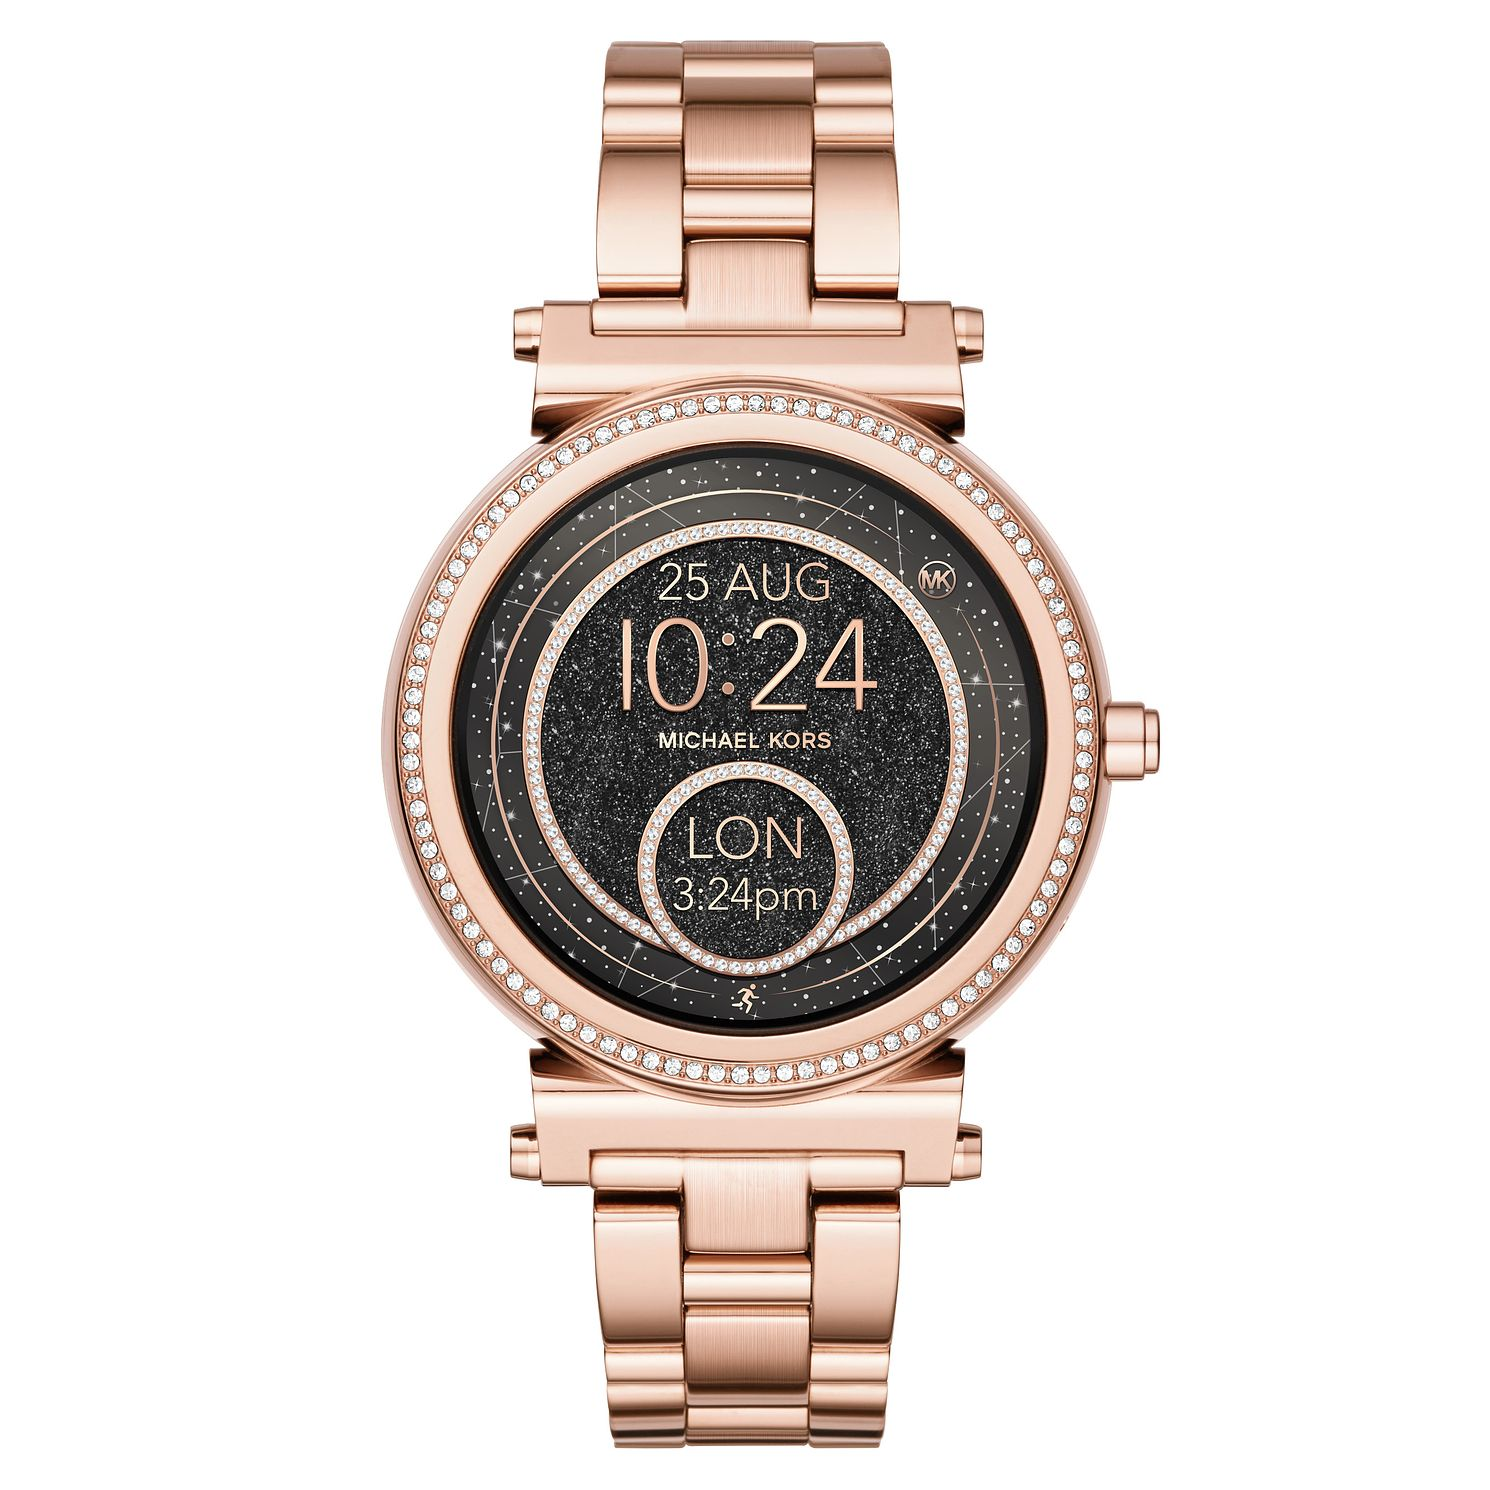 Michael Kors Access Sofie Rose Gold Tone Smartwatch Ernest Jones